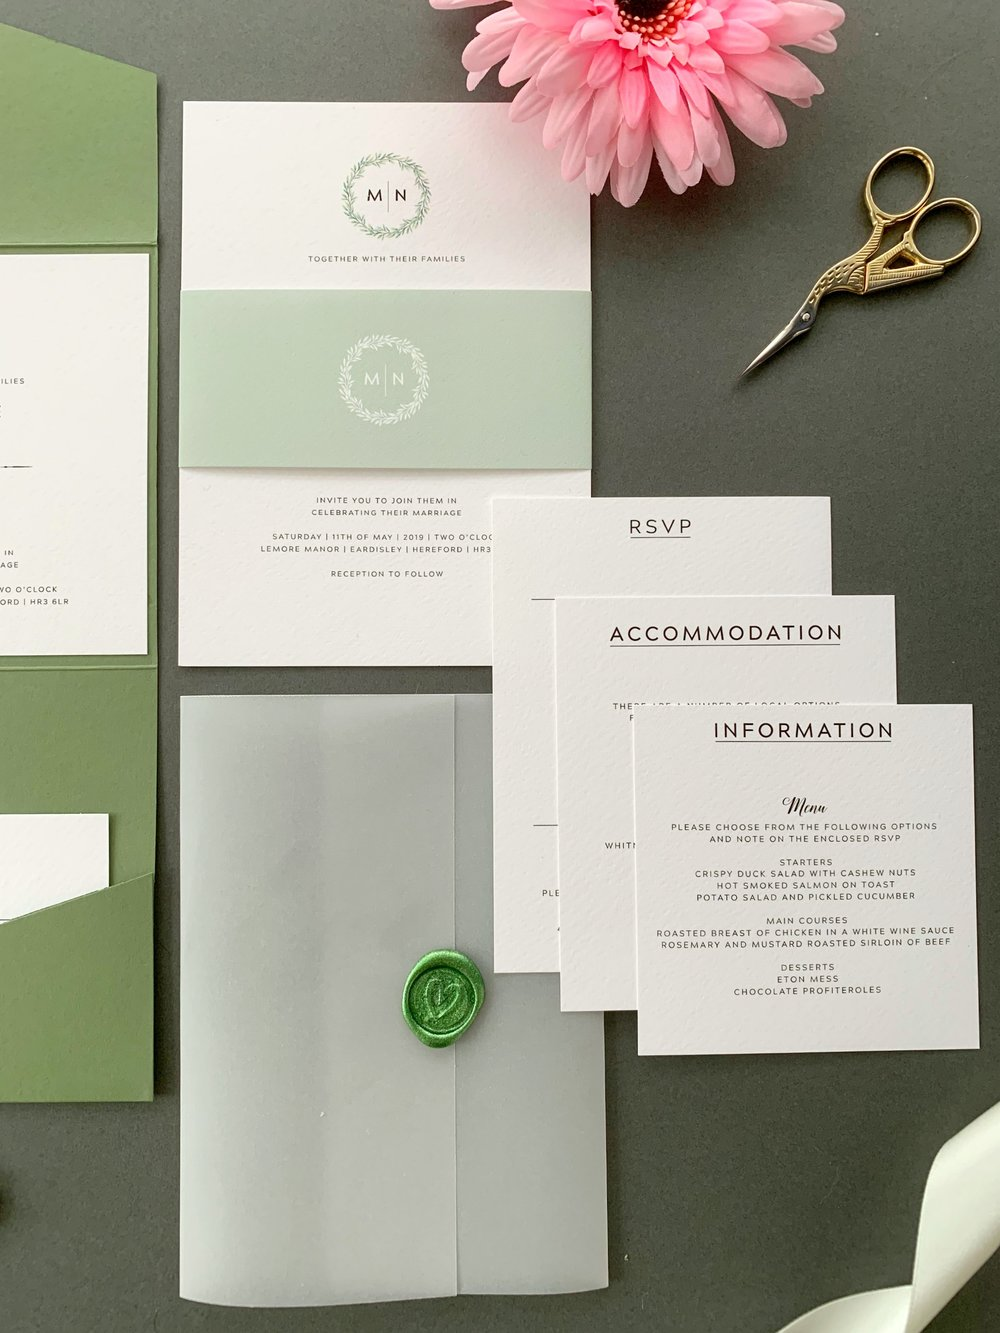 Mansion House Invitation Suite in Jet Black with Light Sage Paper Belly Band, with Sparkling Metallic Green Wax Seal on Vellum Jacket